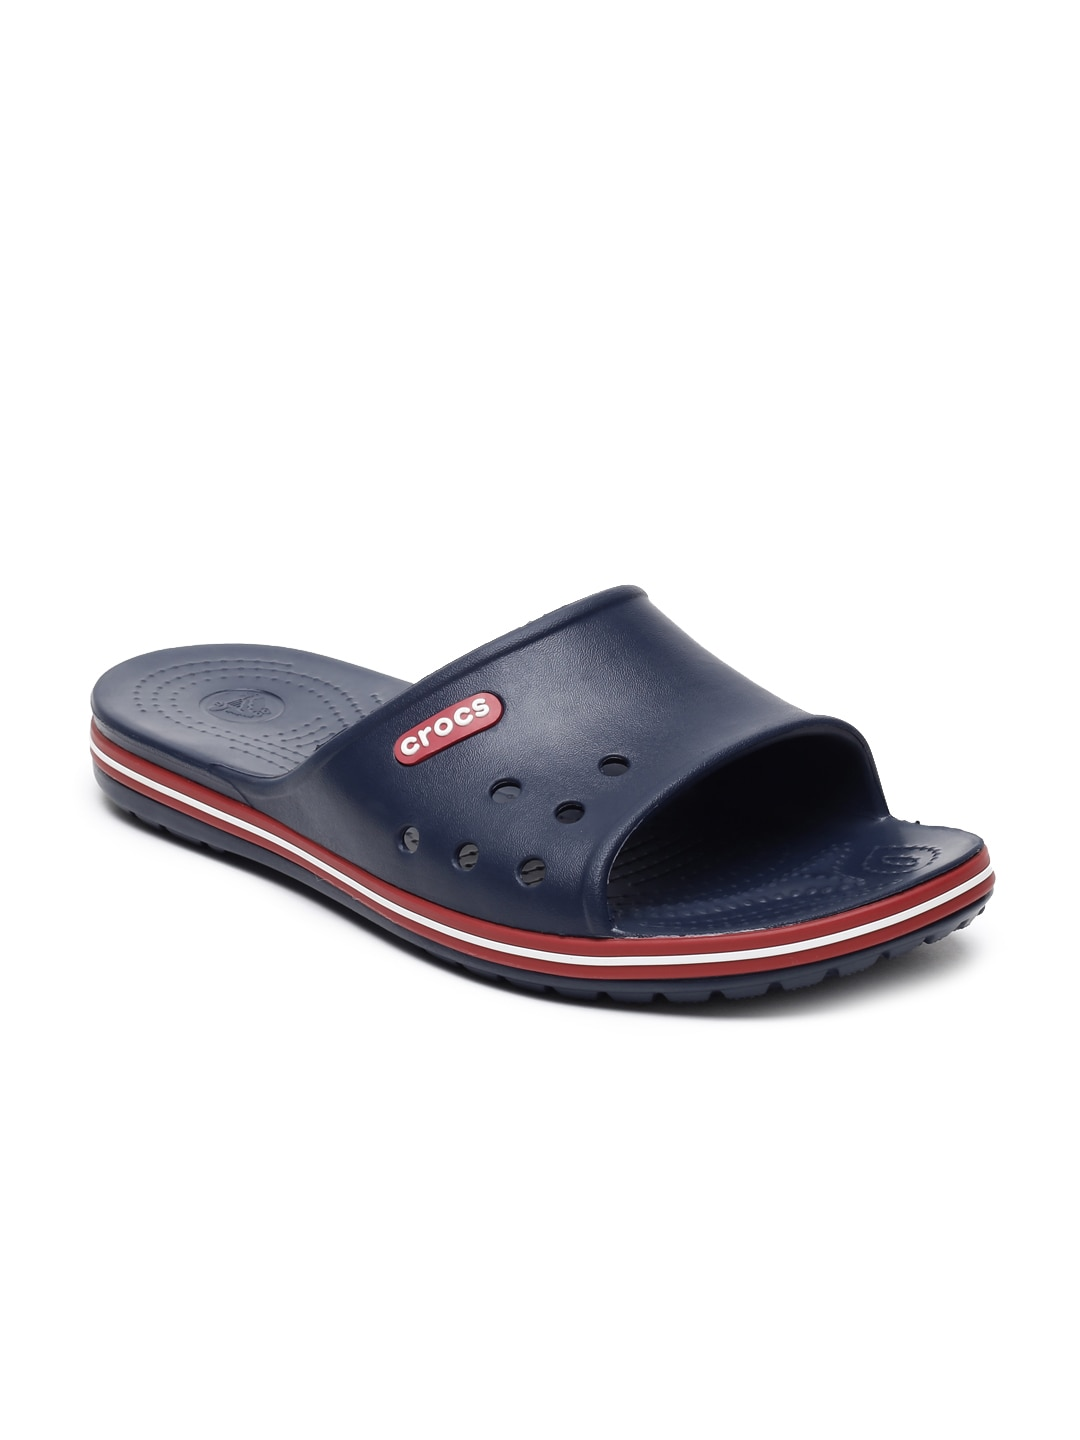 199865ded973 Crocs Rubber Flip Flops - Buy Crocs Rubber Flip Flops online in India